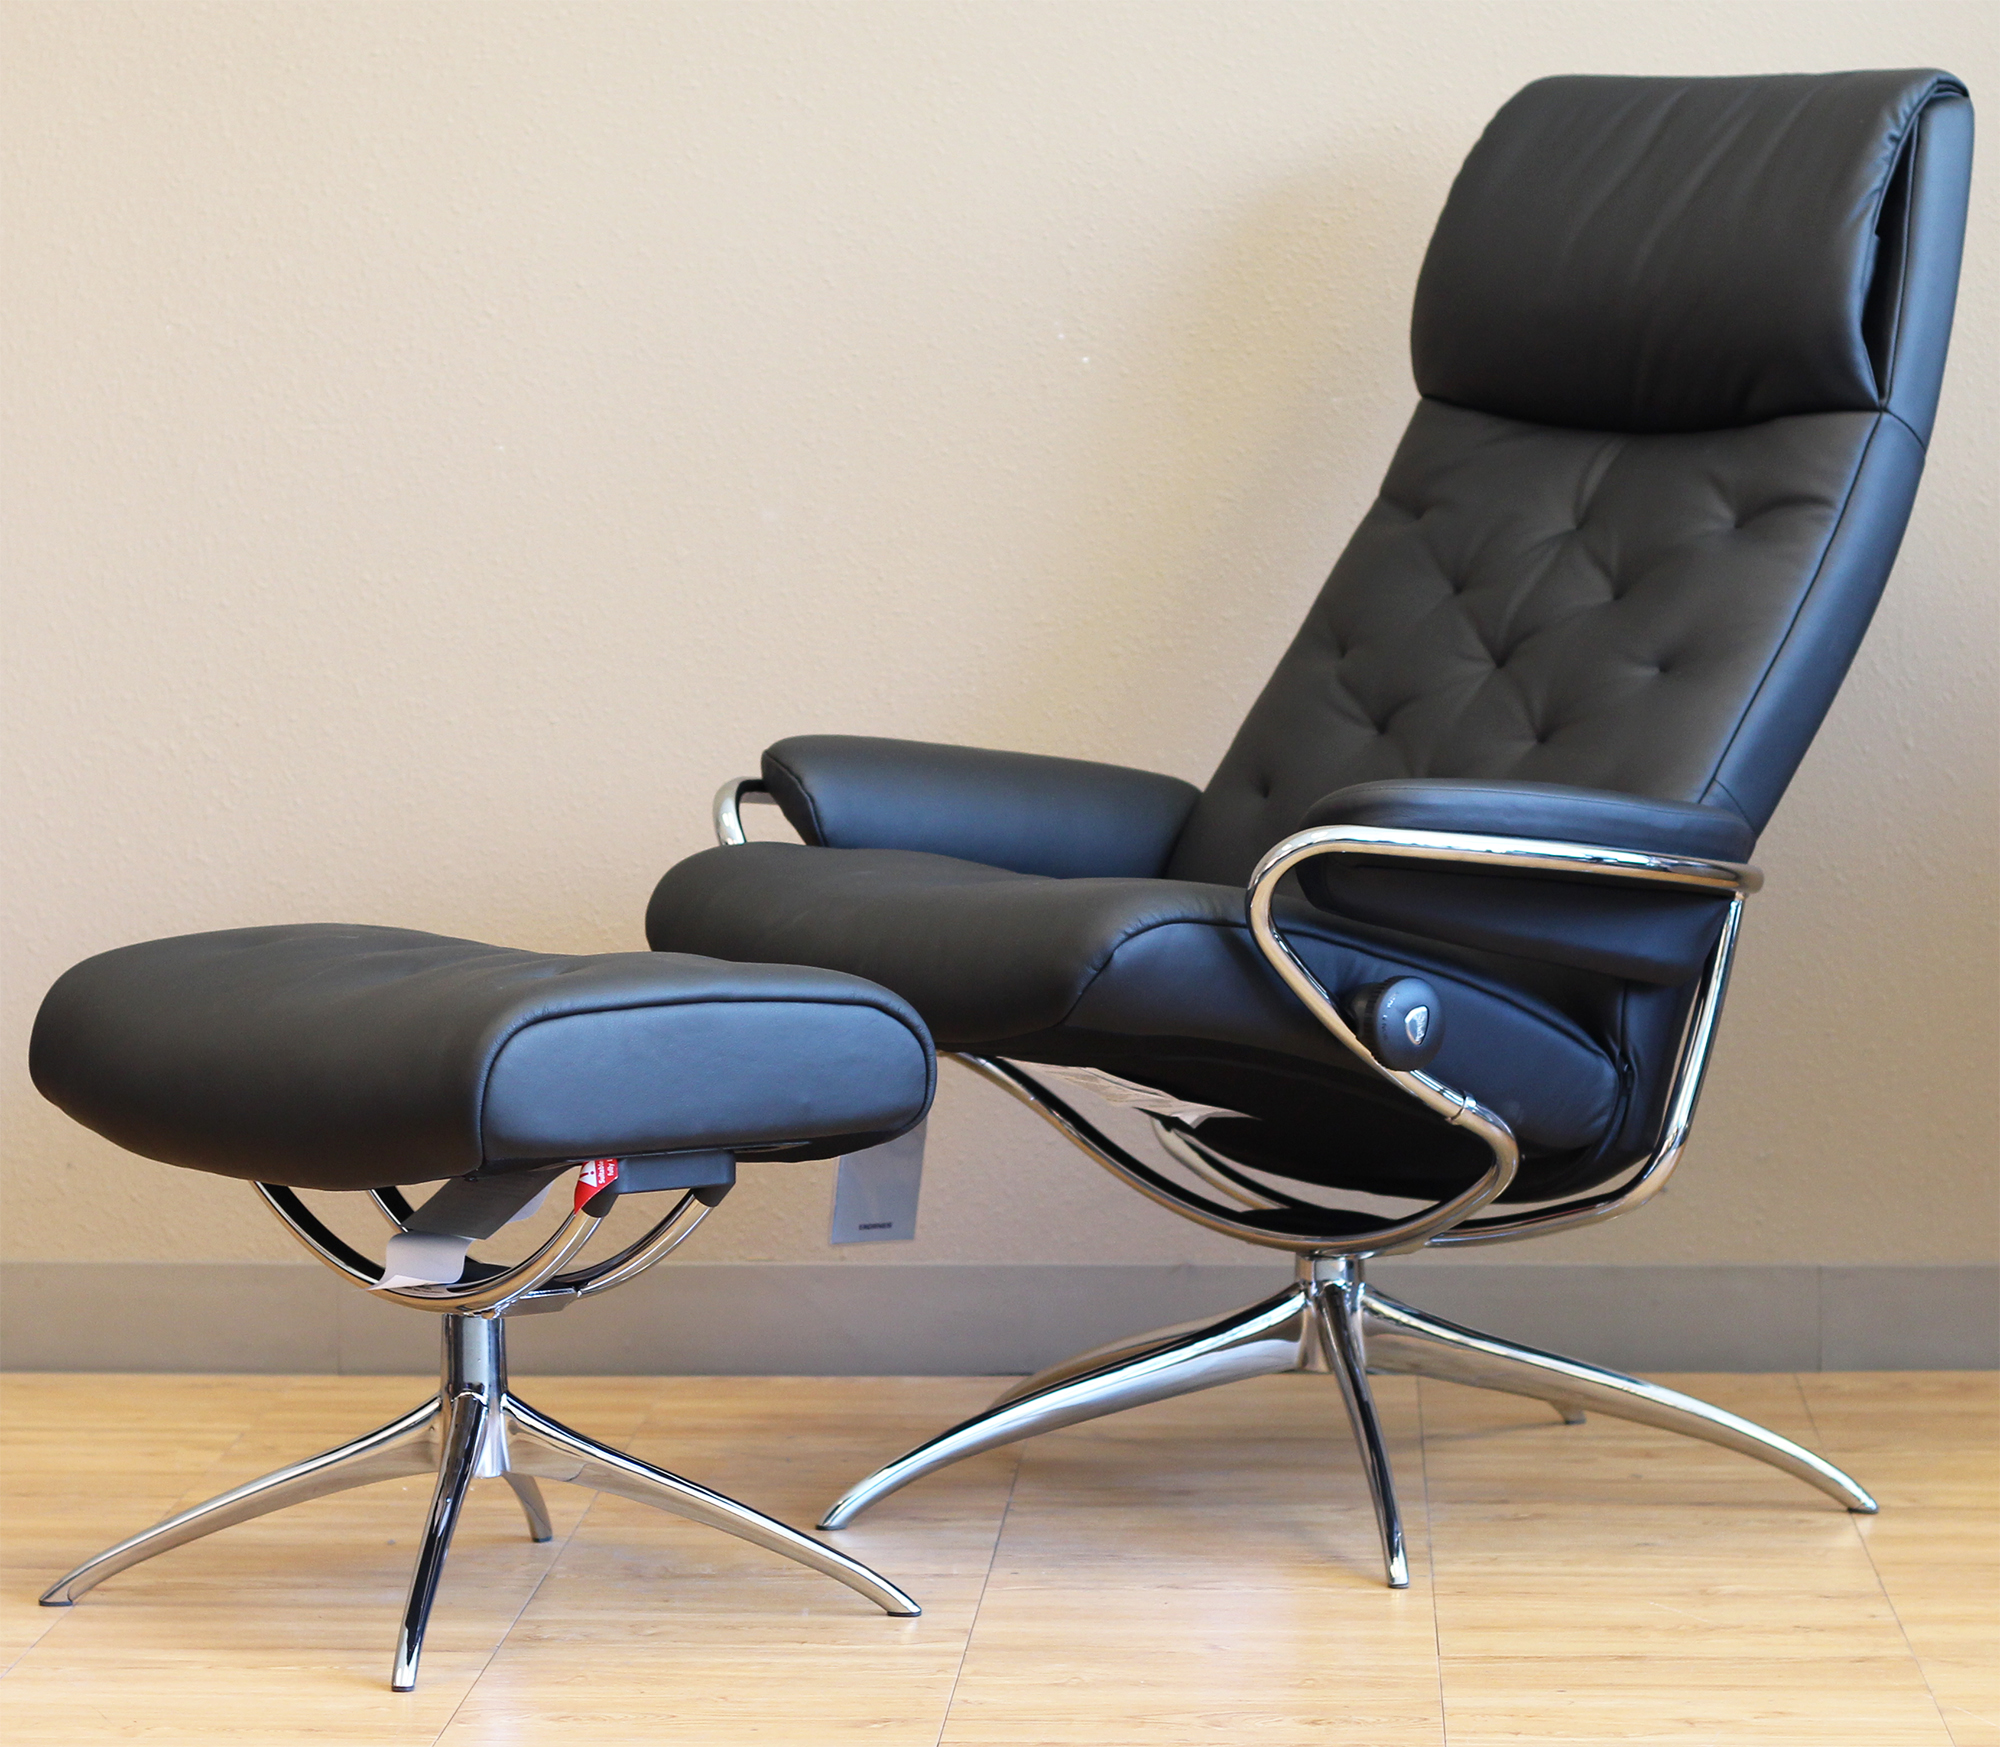 Leather Reclining Chairs Stressless Metro High Back Paloma Black Leather Recliner Chair By Ekornes